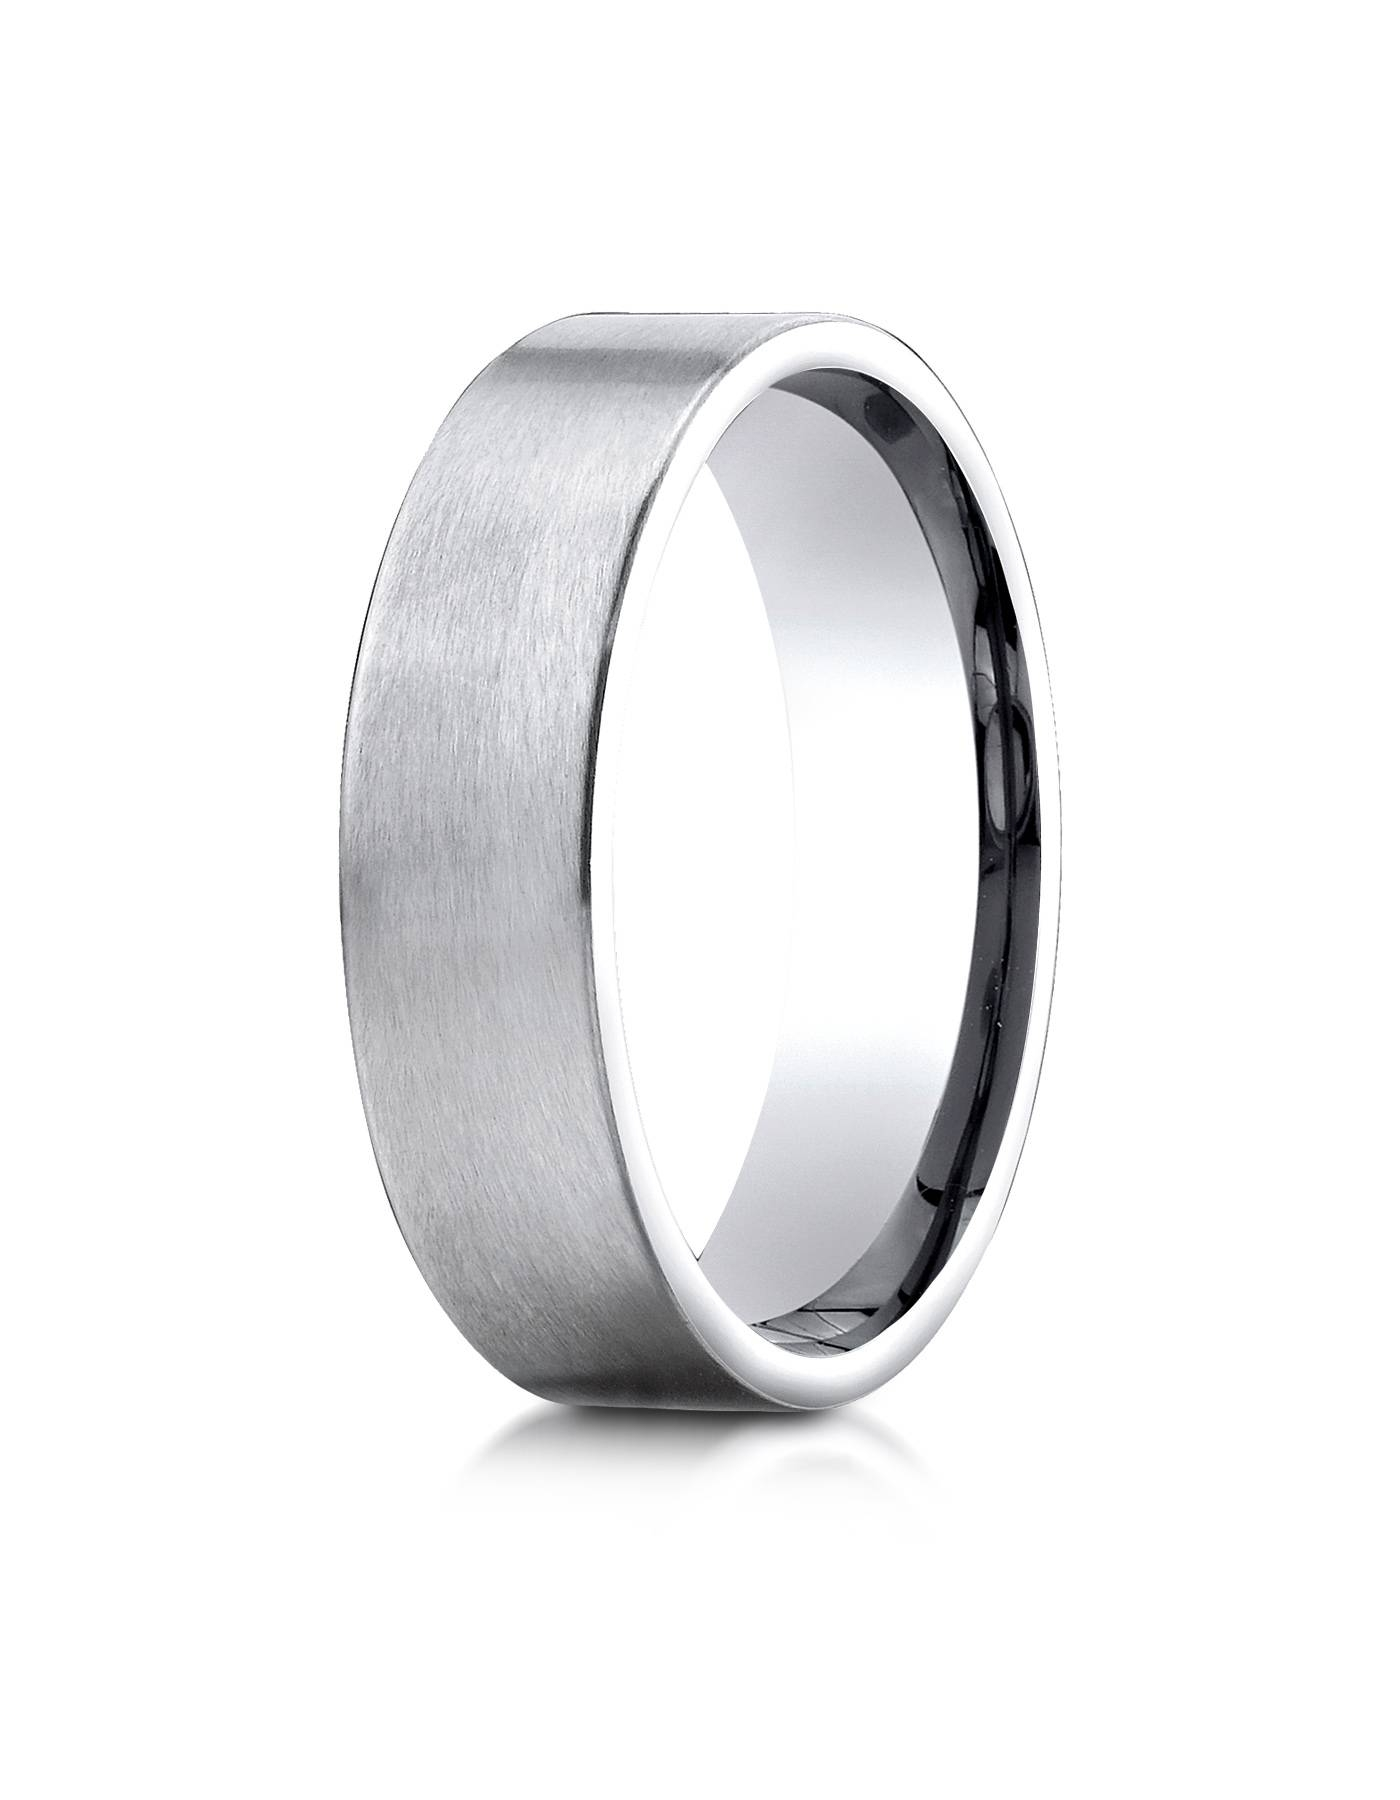 Wedding Bands For Him At Bernie Robbins Jewelers Within Matte Black Men's Wedding Bands (View 14 of 15)